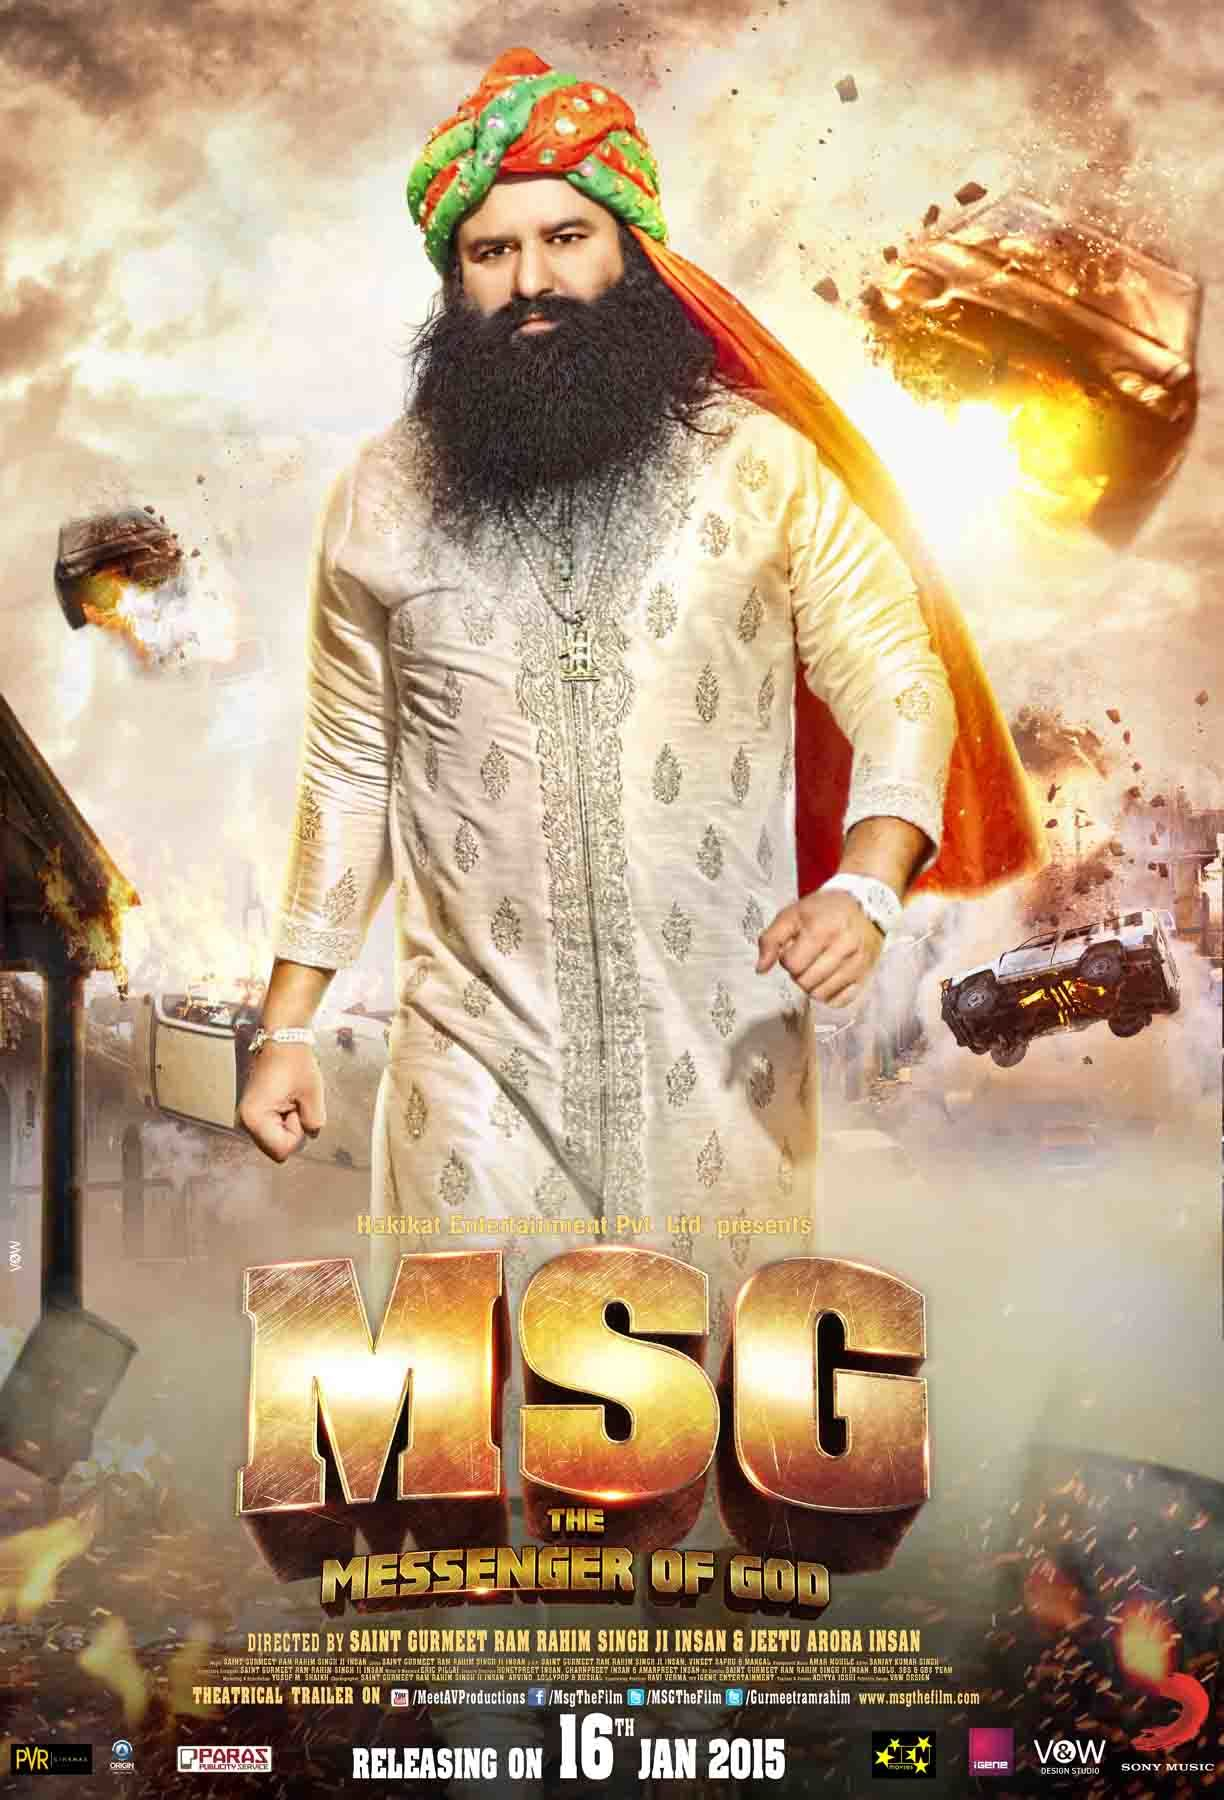 Sant Gurmeet Ram Rahim Singh Ji Hd Wallpaper Best Hd Wallpaper